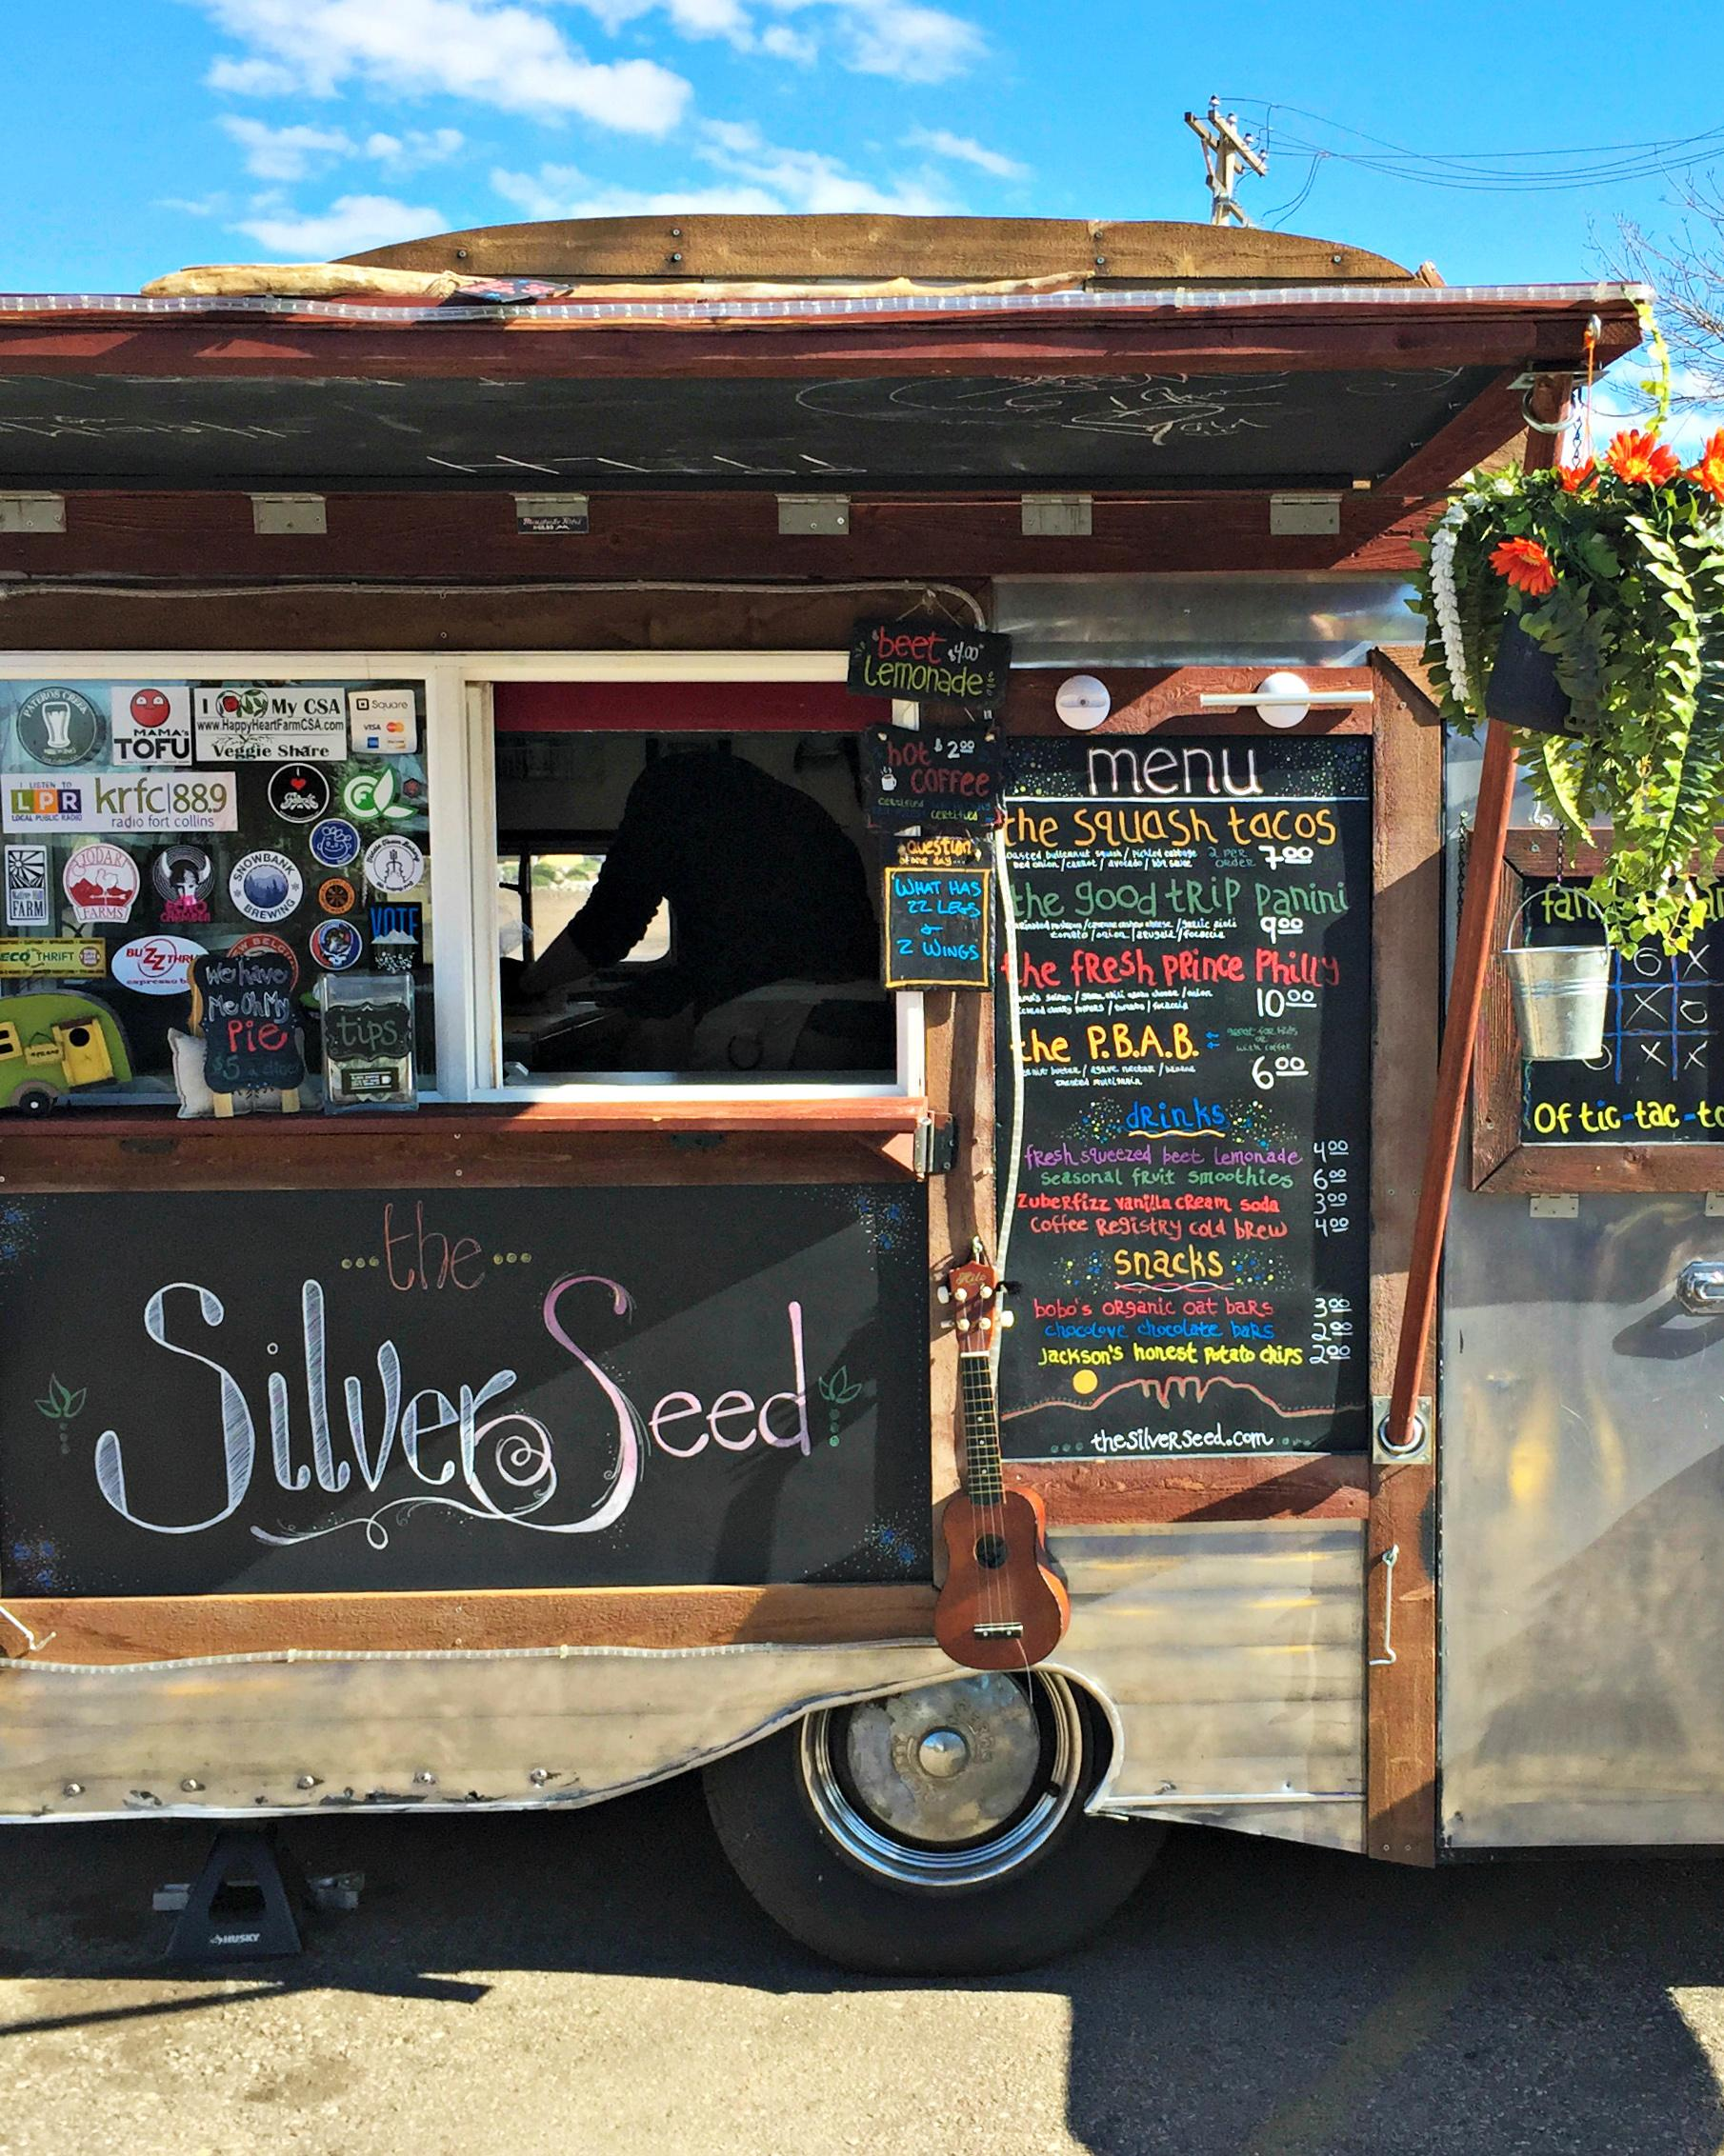 silver-seed-food-truck-1115